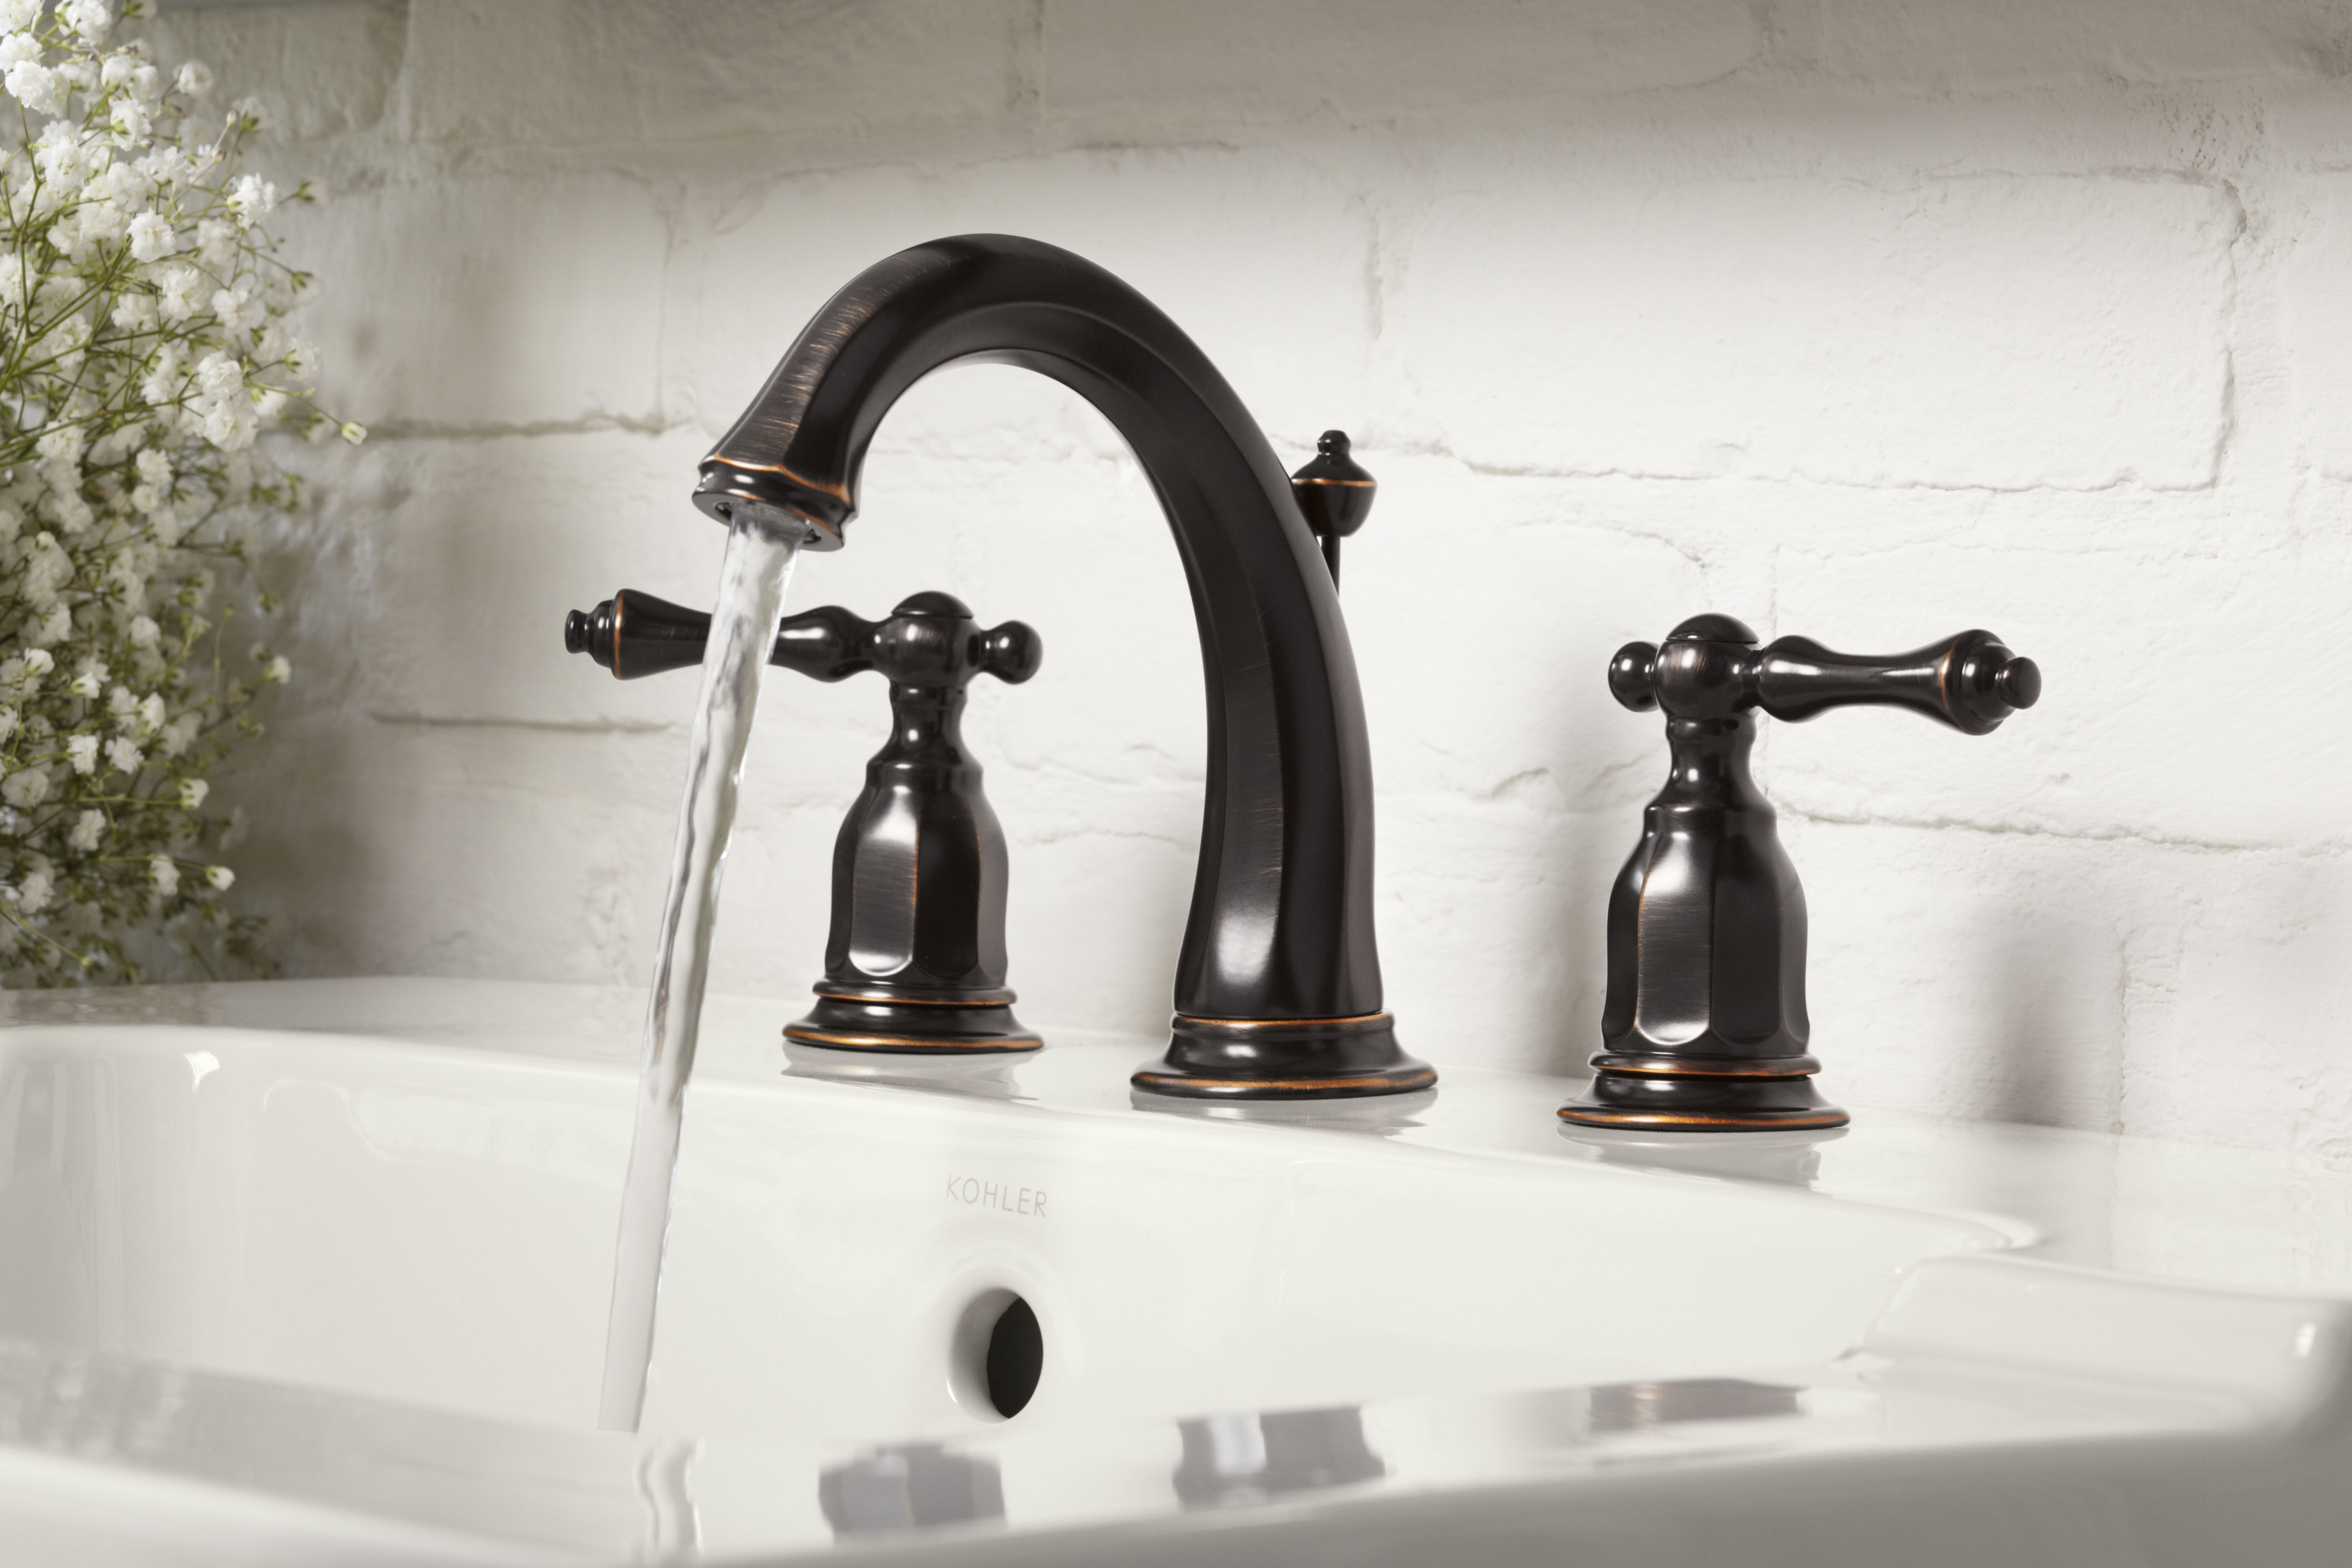 Kelston Faucet     Tresham Sink     The deep color of an Oil-Rubbed Bronze finish highlights the ornate details of a traditional faucet.